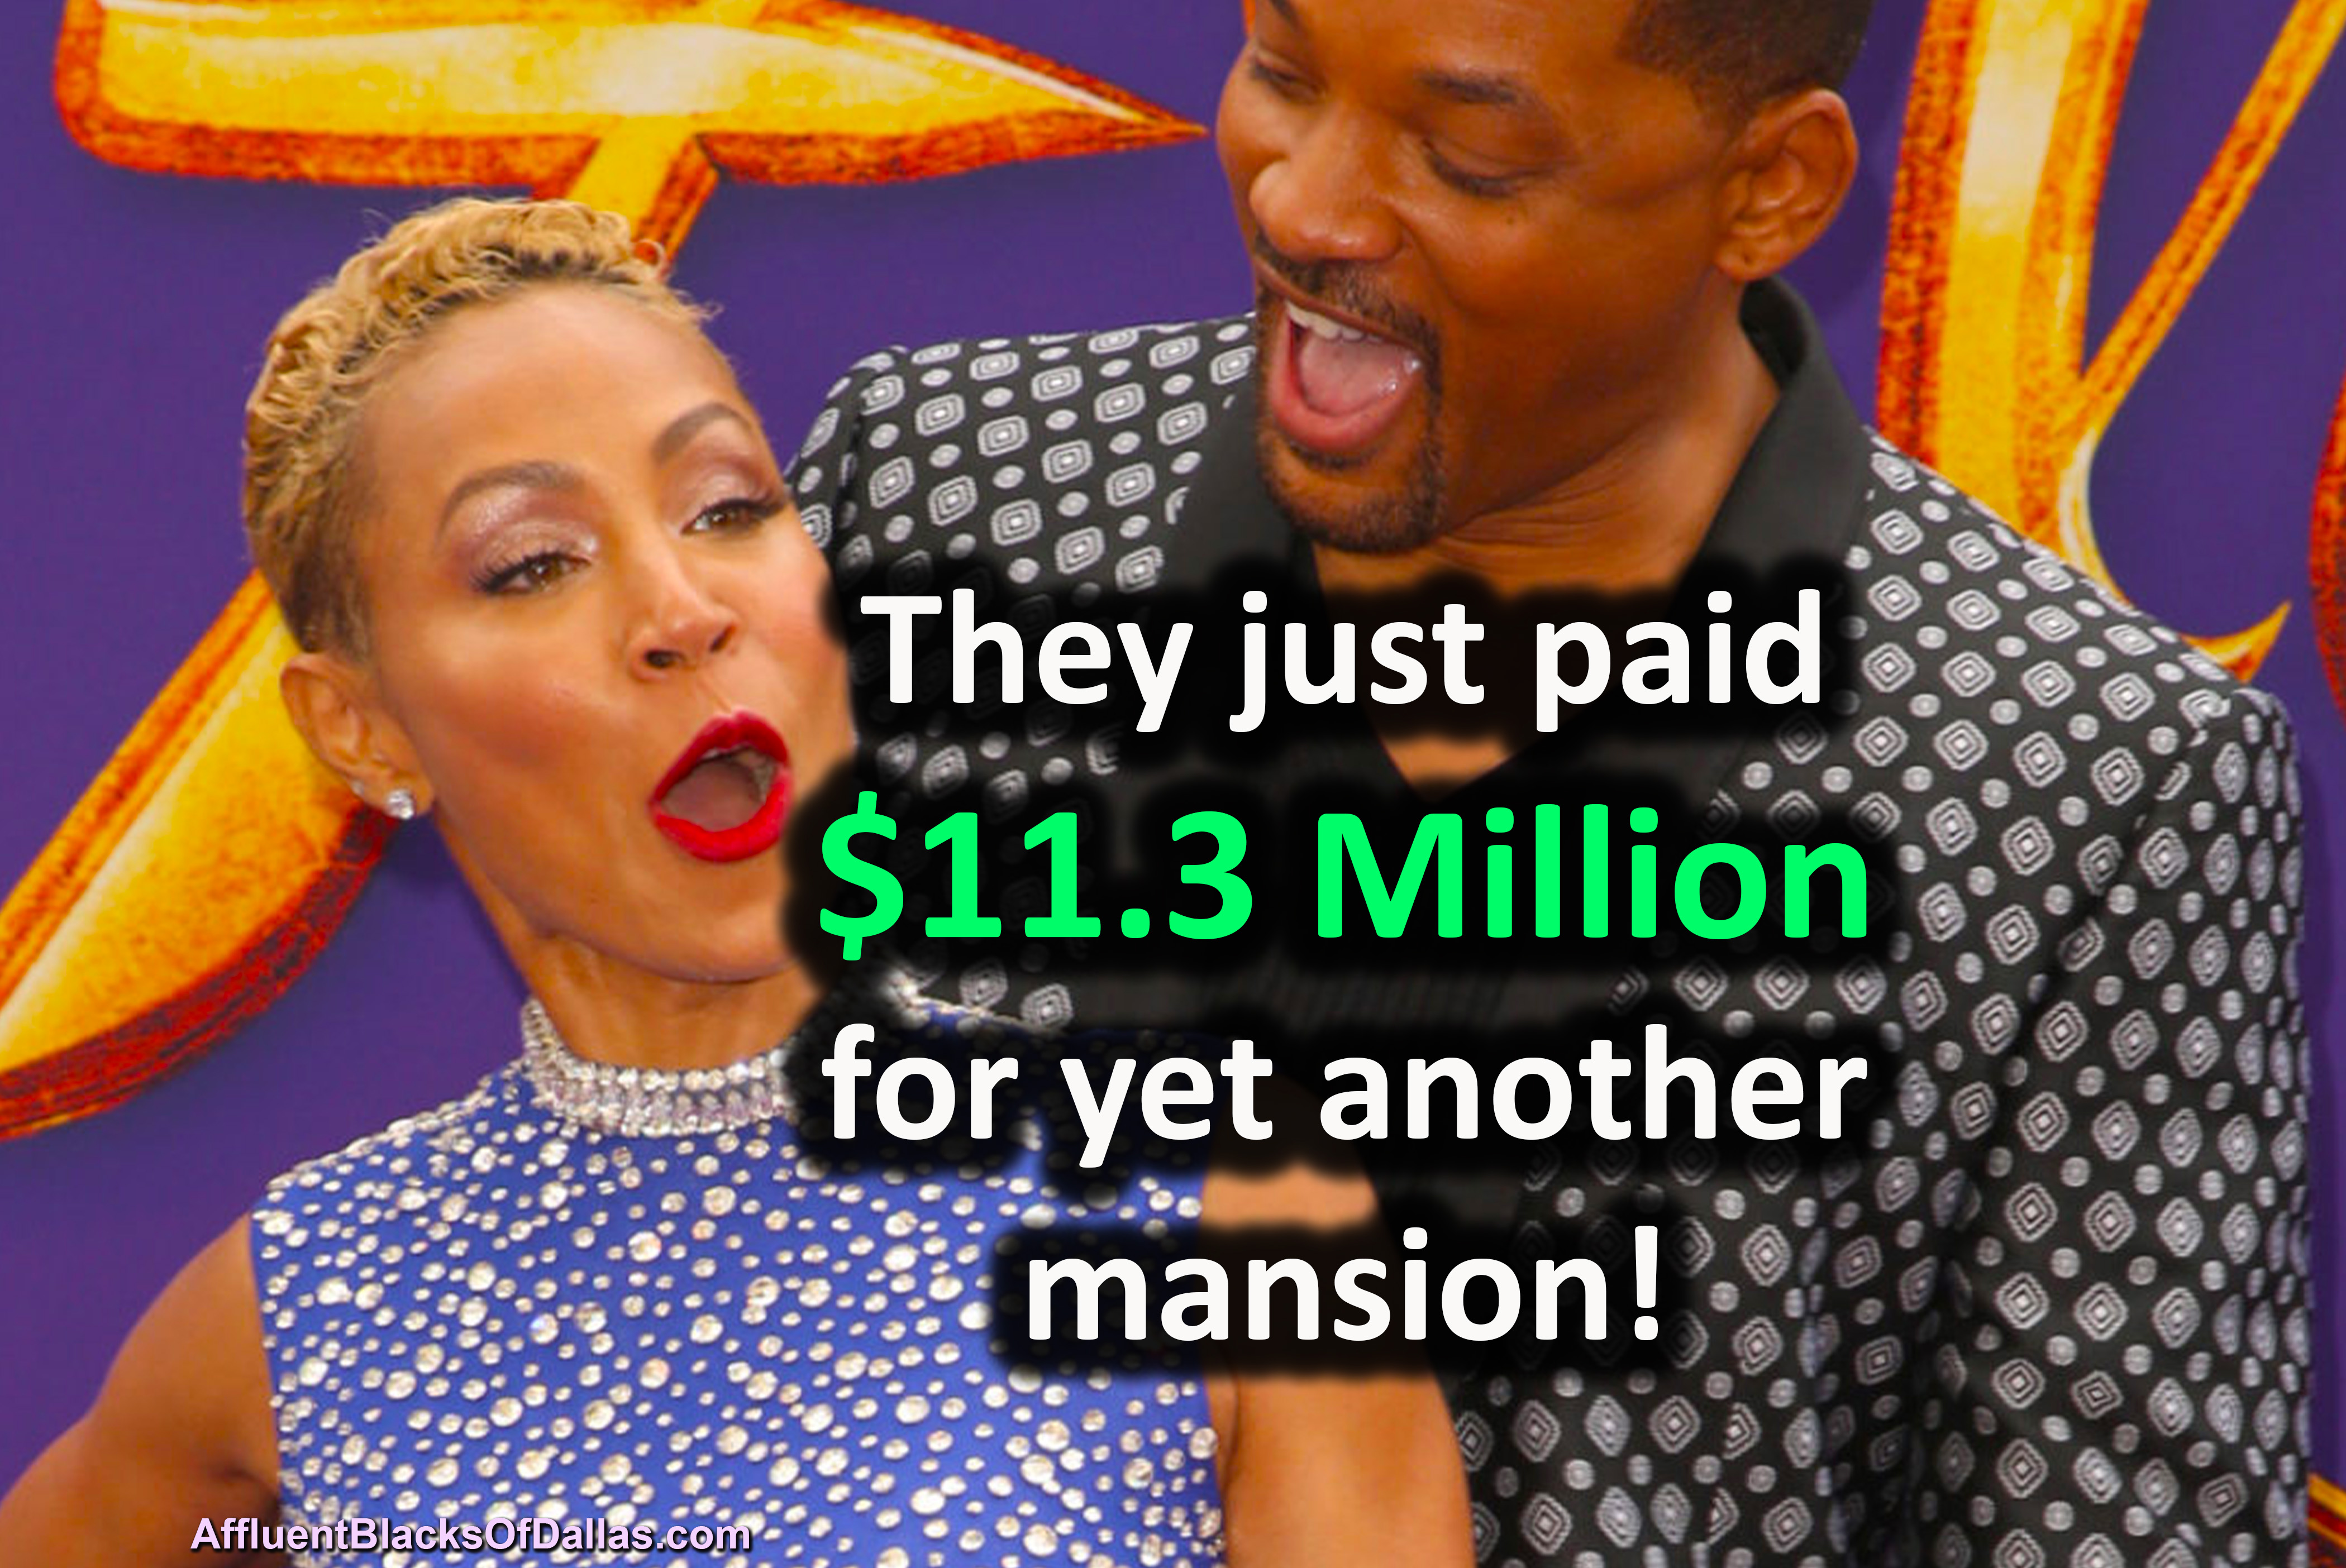 From Will and Jada to Africa, We've Got Your Affluent Black Business News